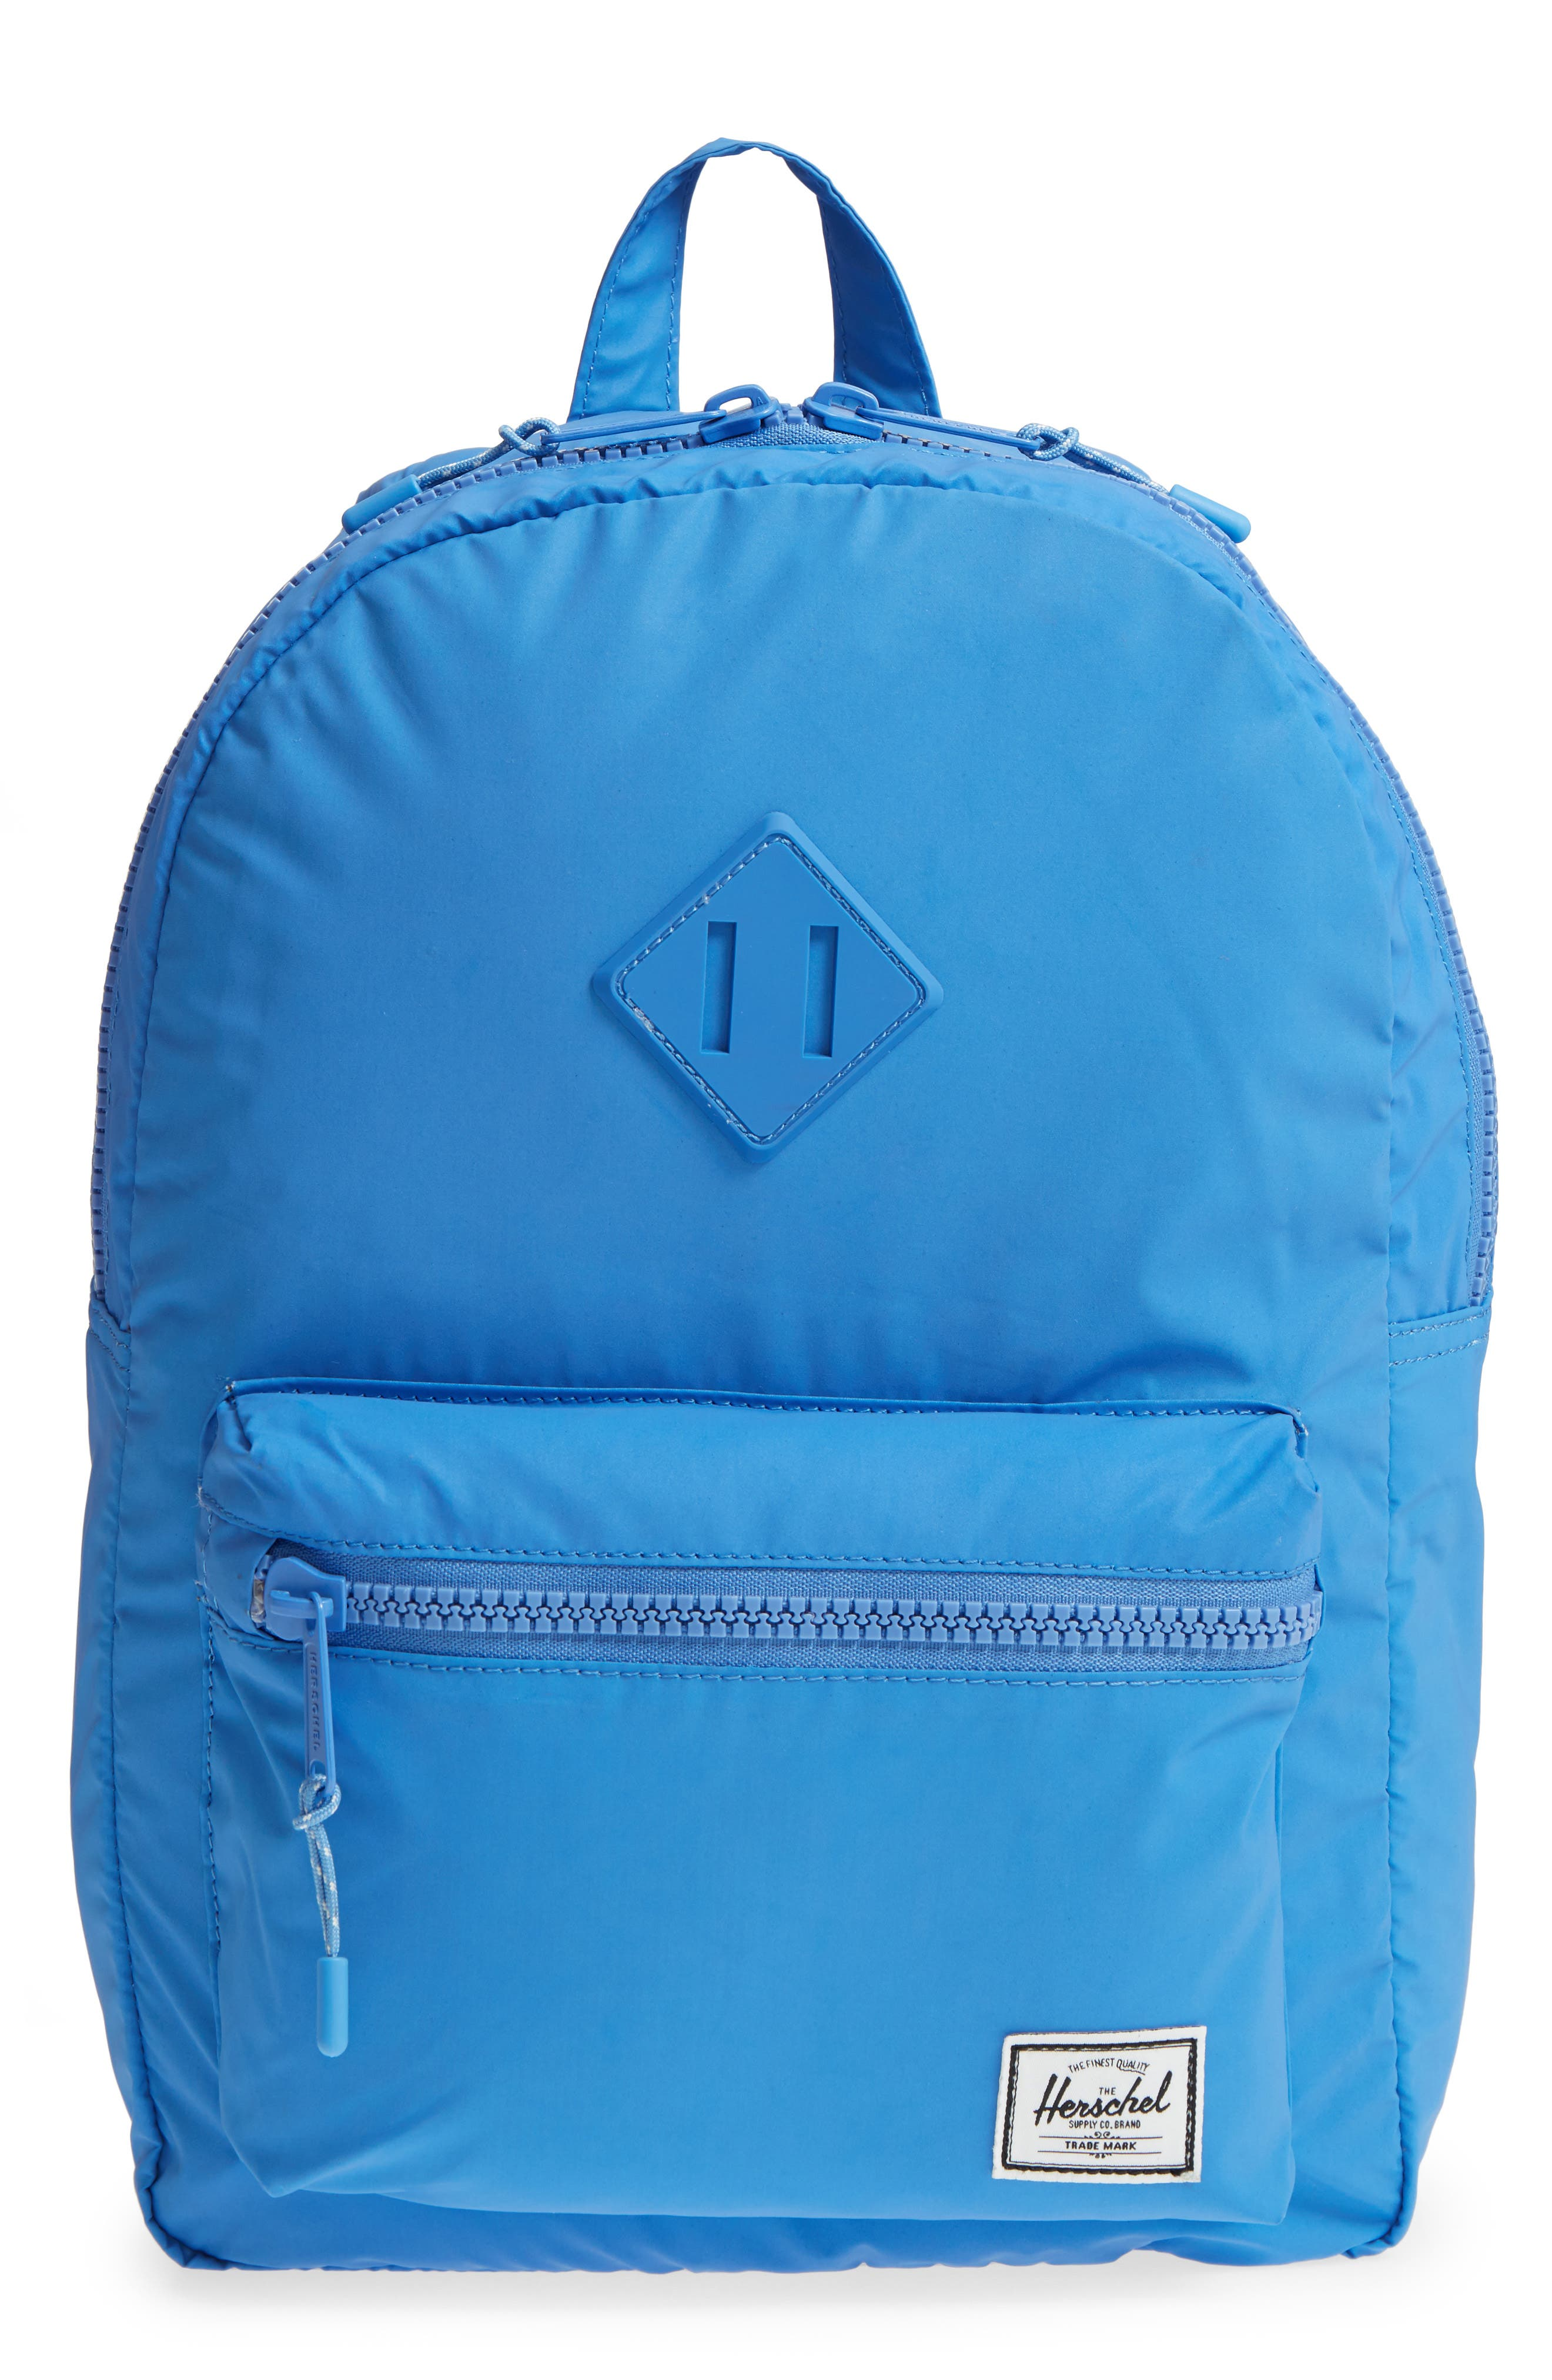 Heritage Backpack,                         Main,                         color, Blue Reflective Rubber